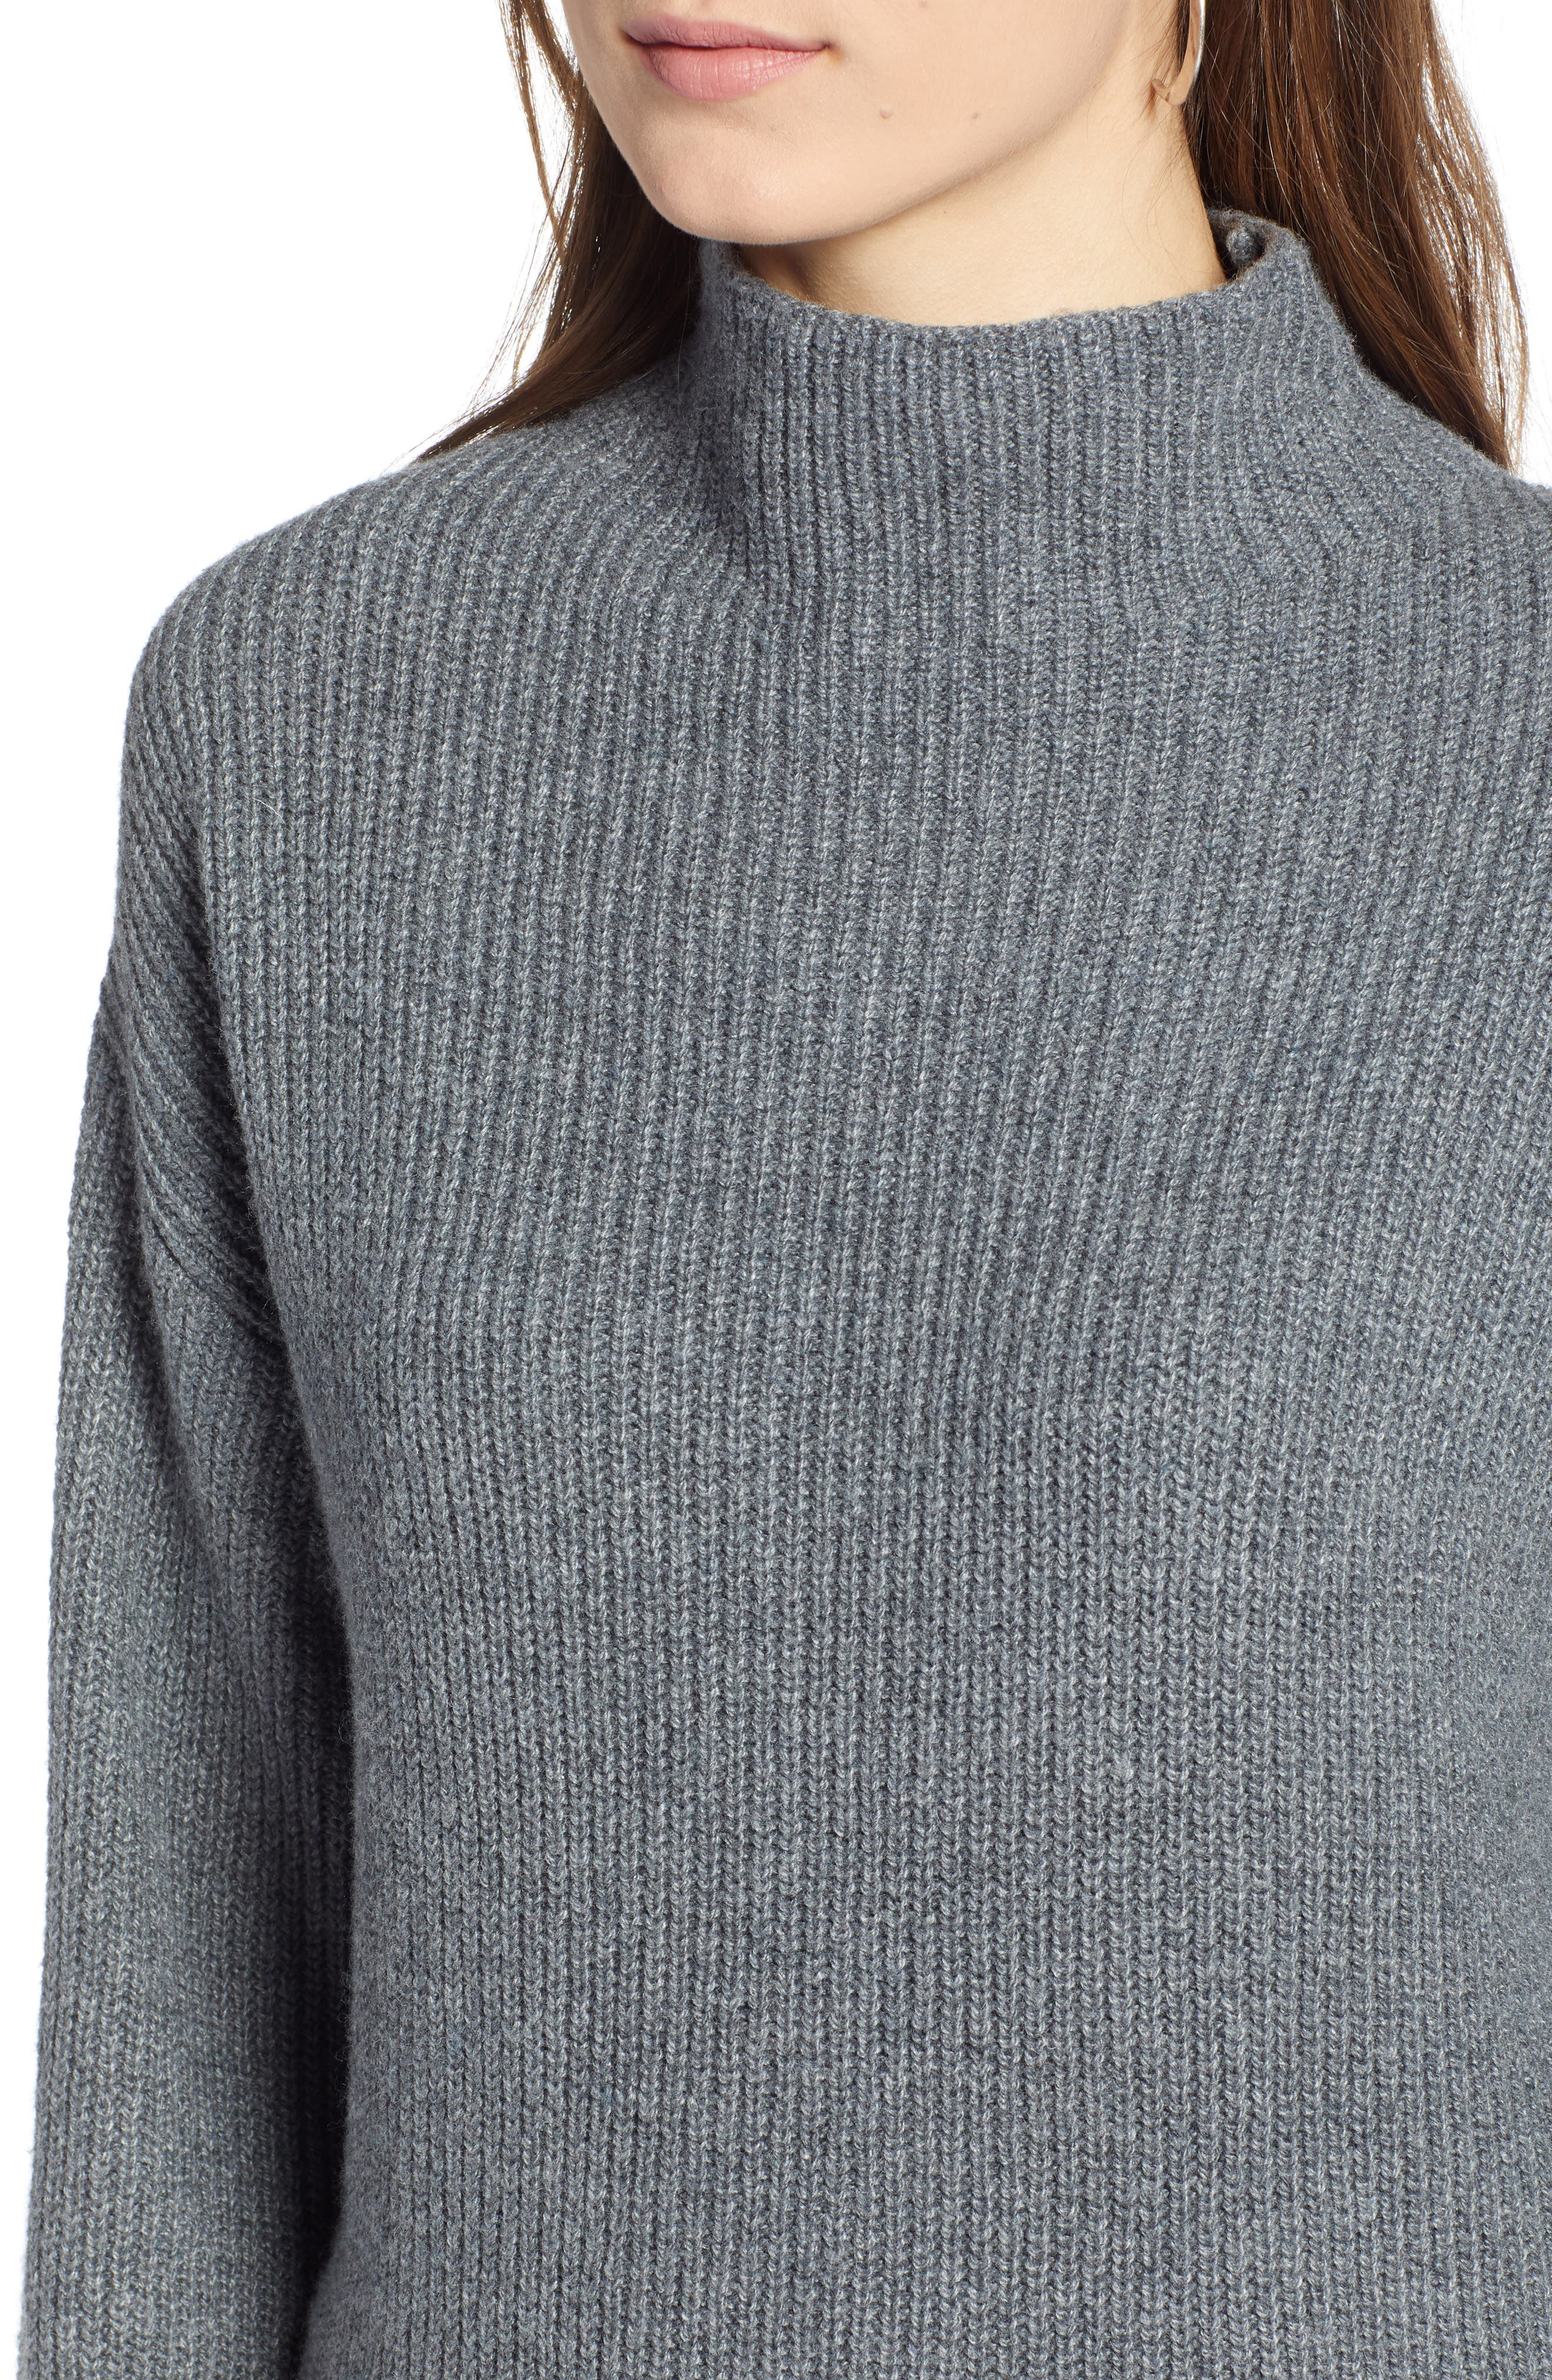 Ribbed Funnel Neck Sweater,                             Alternate thumbnail 4, color,                             030